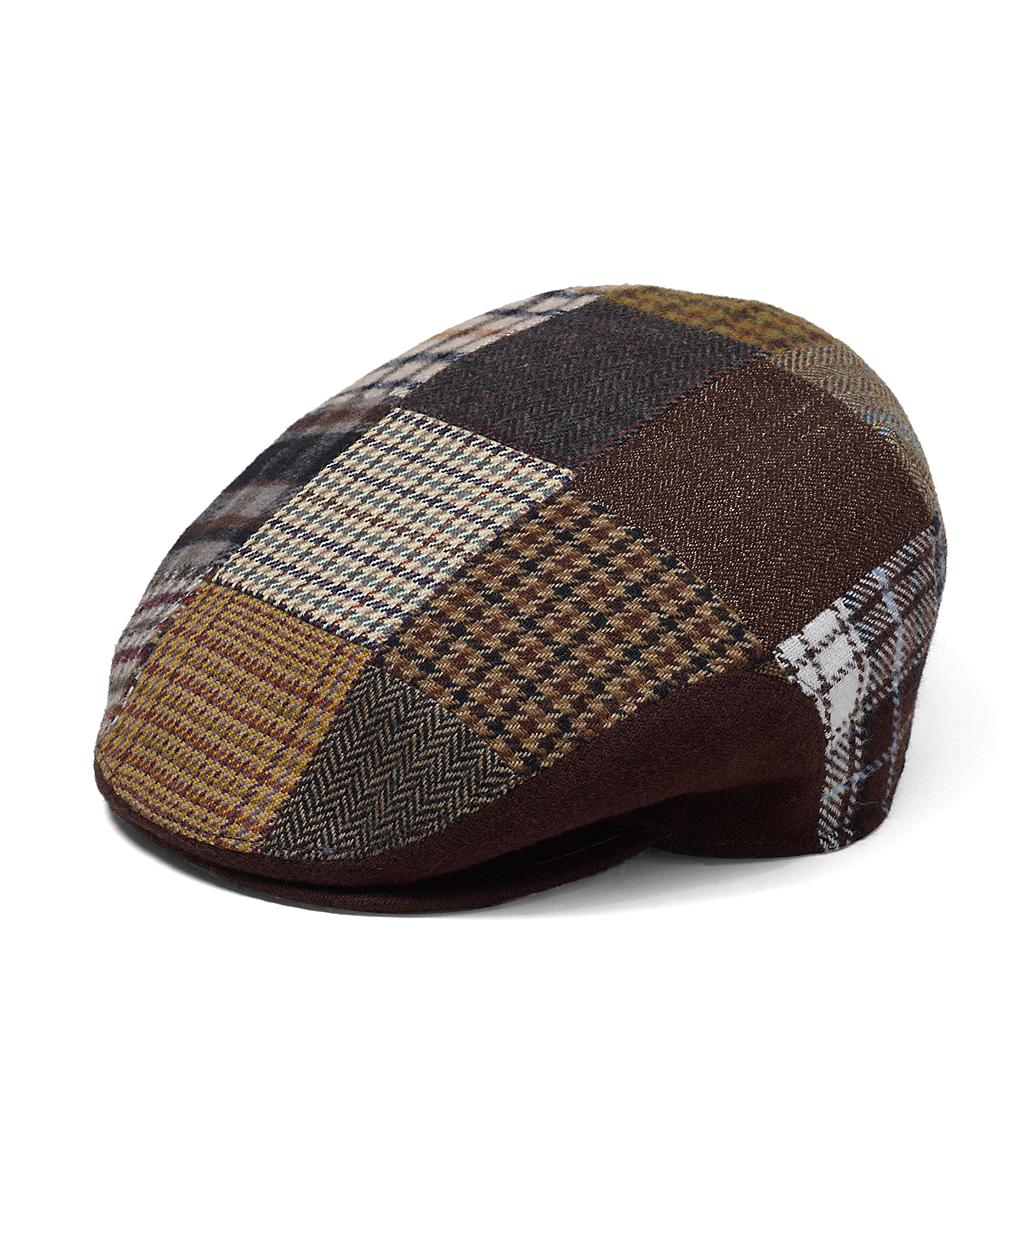 defec1ed368 Lyst - Brooks Brothers Wool Patchwork Ivy Cap in Brown for Men